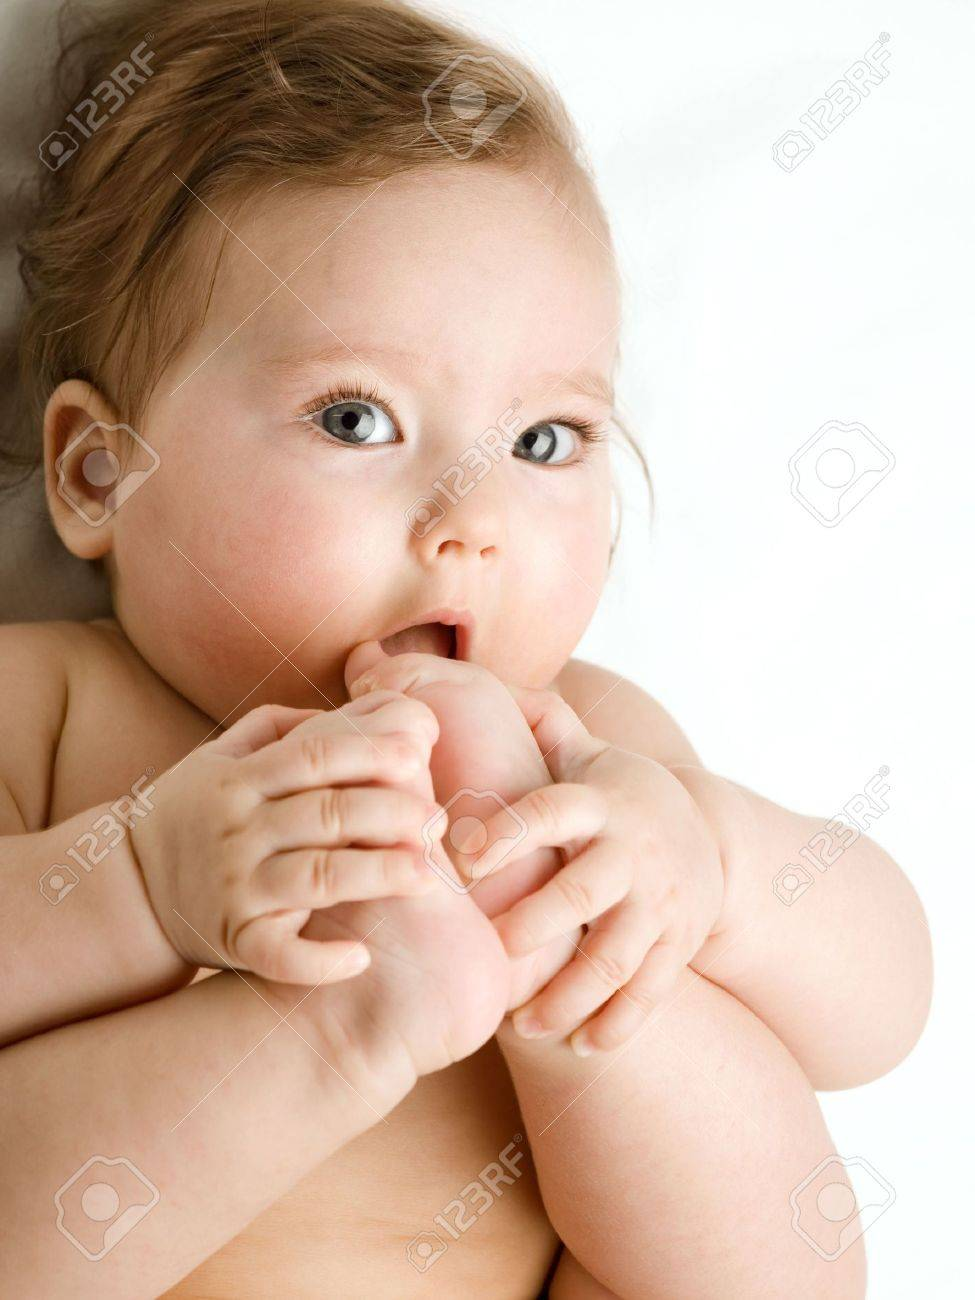 A of baby, taking his feet in his mouth Stock Photo - 5226694